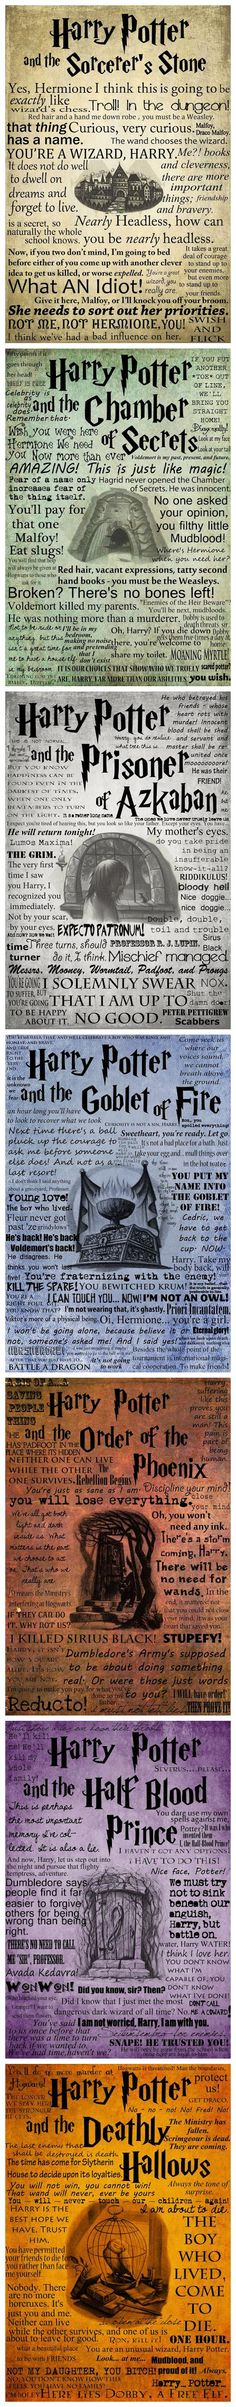 My favorite quotes from all the Harry Potter movies.